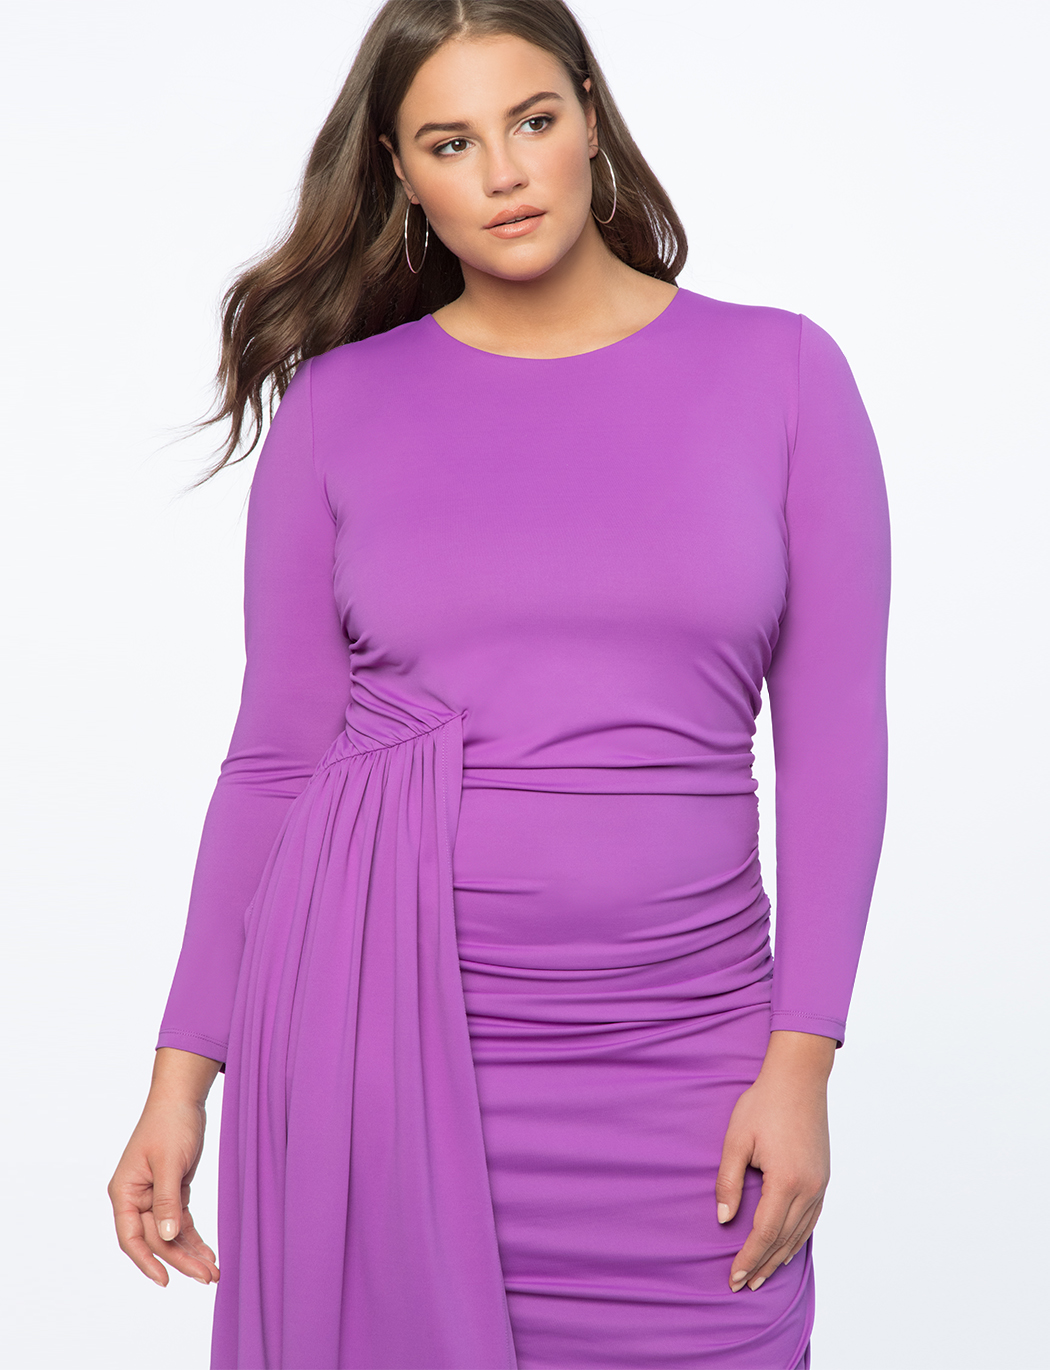 Ruched Dress with Skirt Overlay